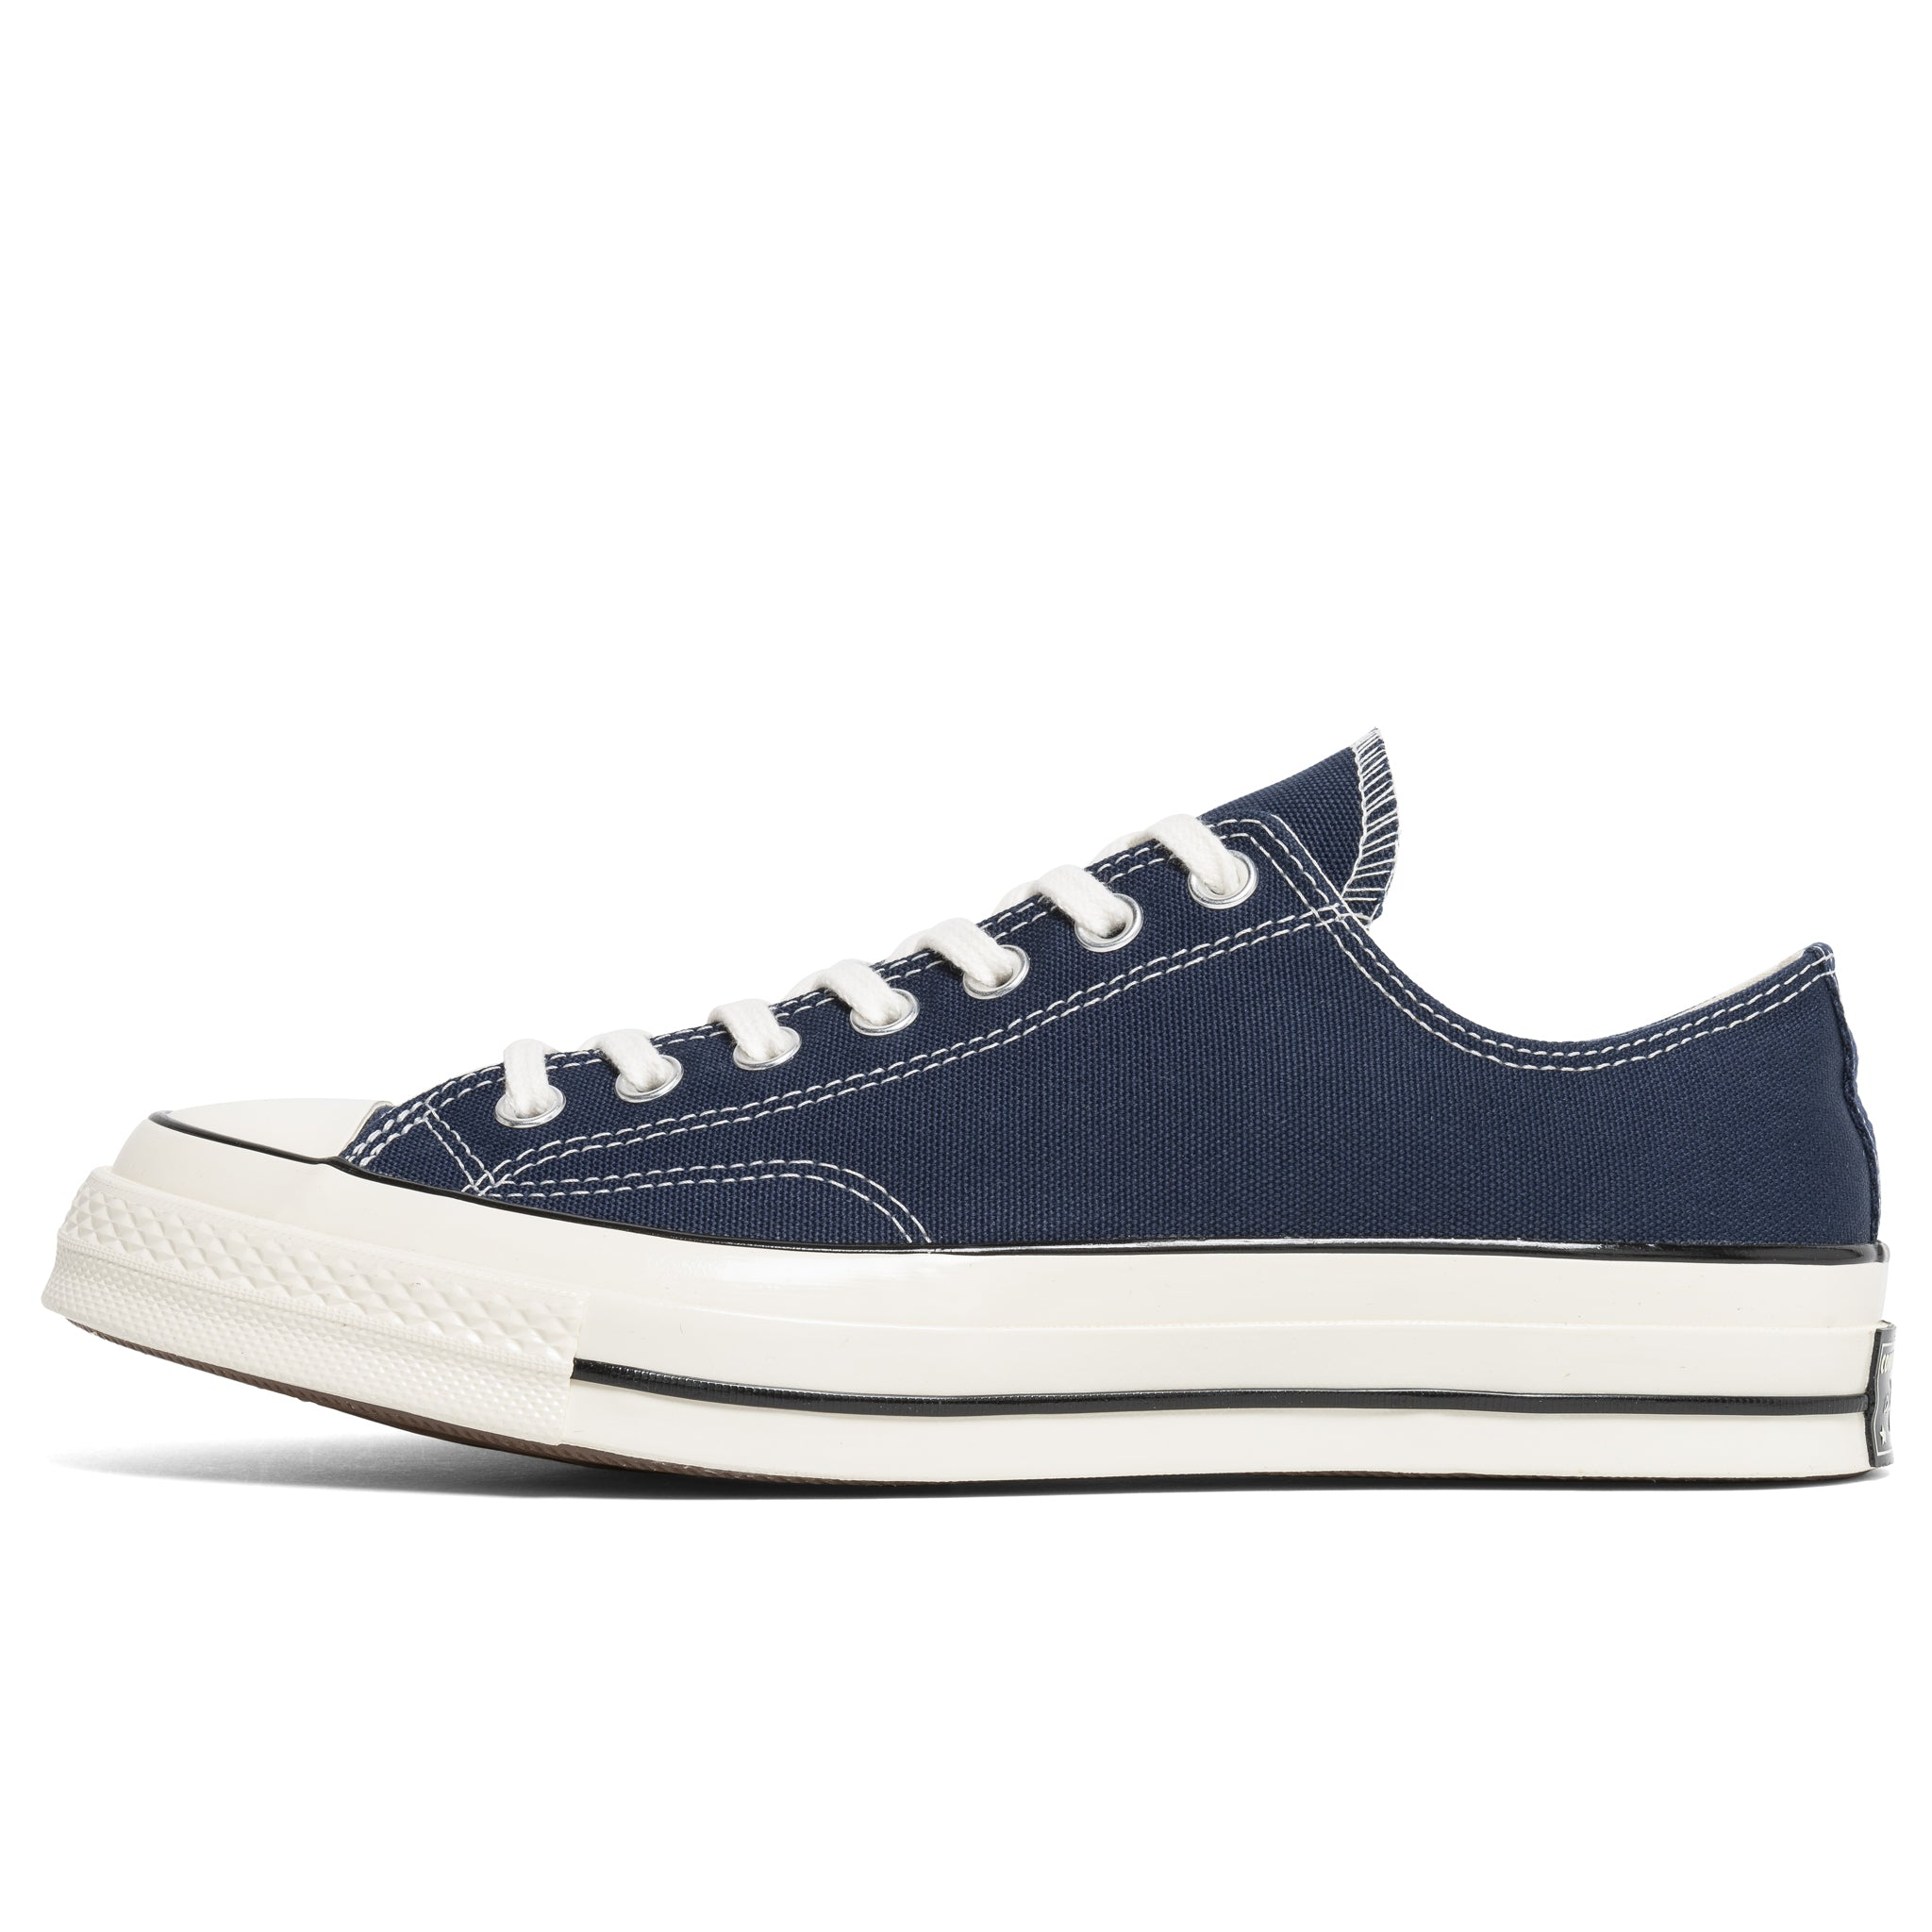 2converse all star 70 ox